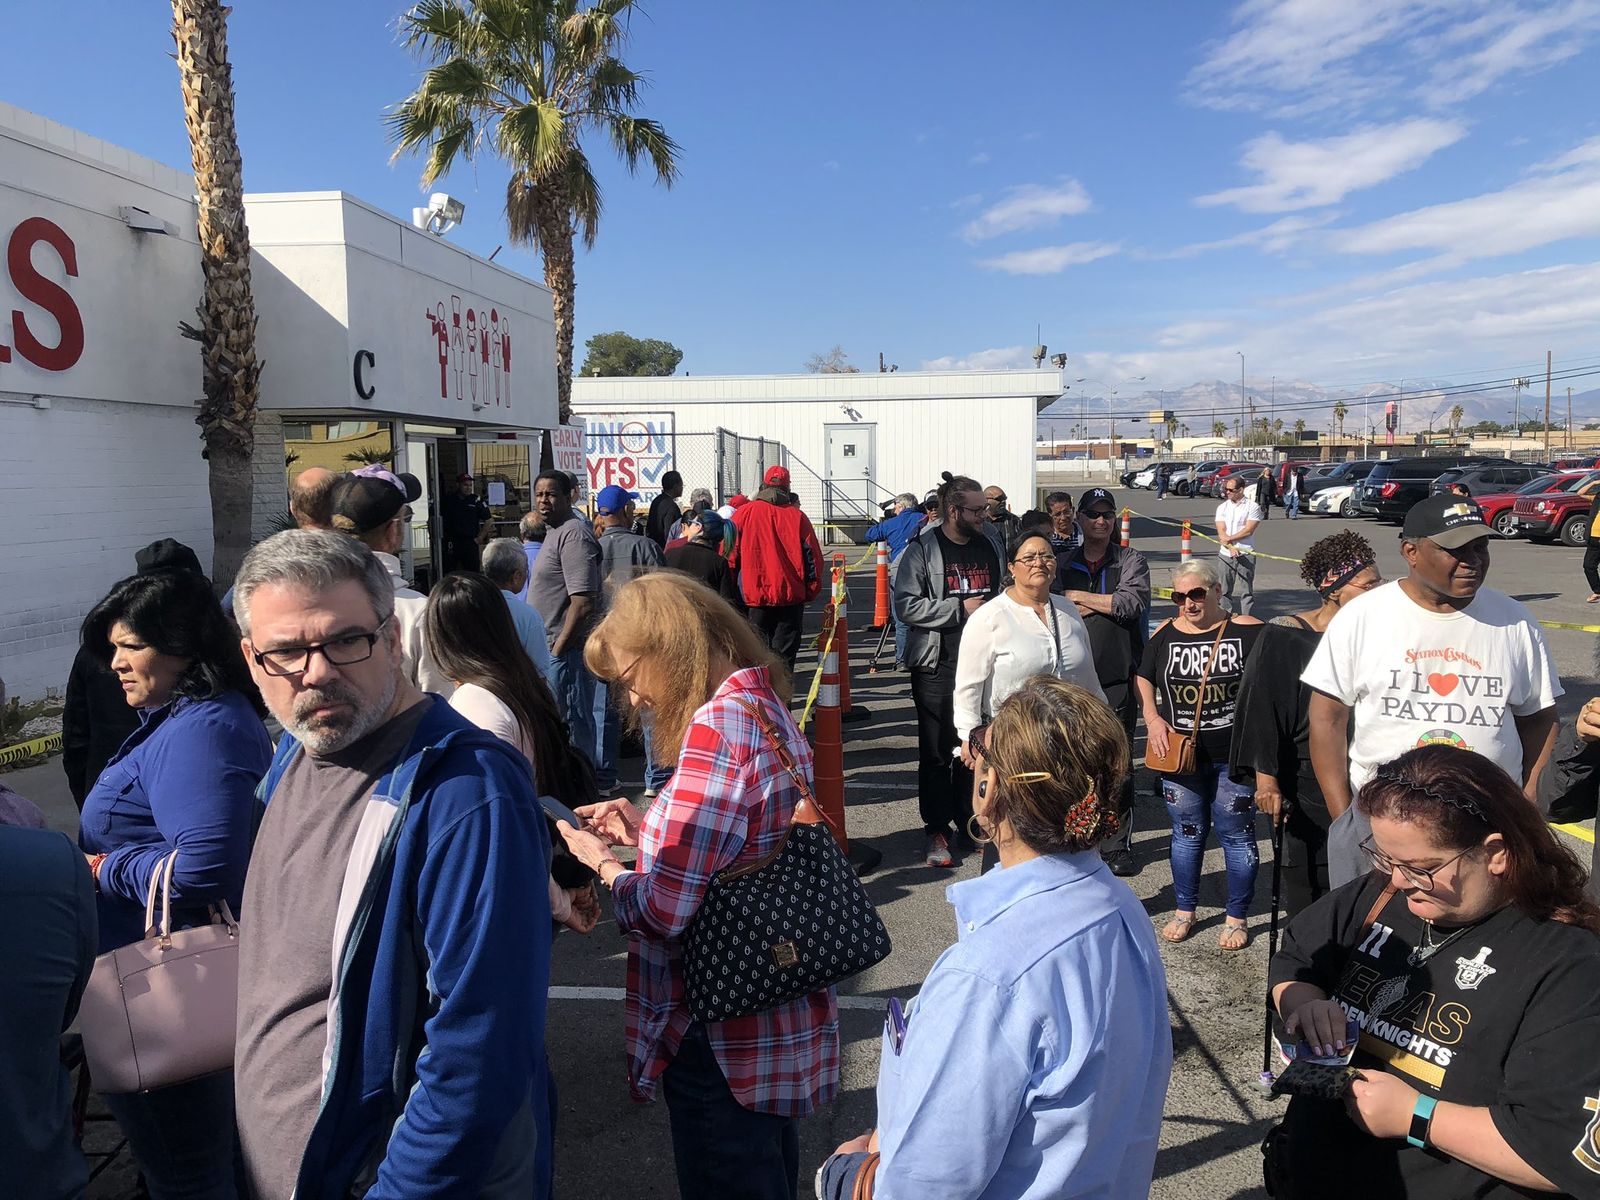 People line up for early caucus voting in Las Vegas on Monday, Feb. 17, 2020. (Faith Jessie | KSNV)